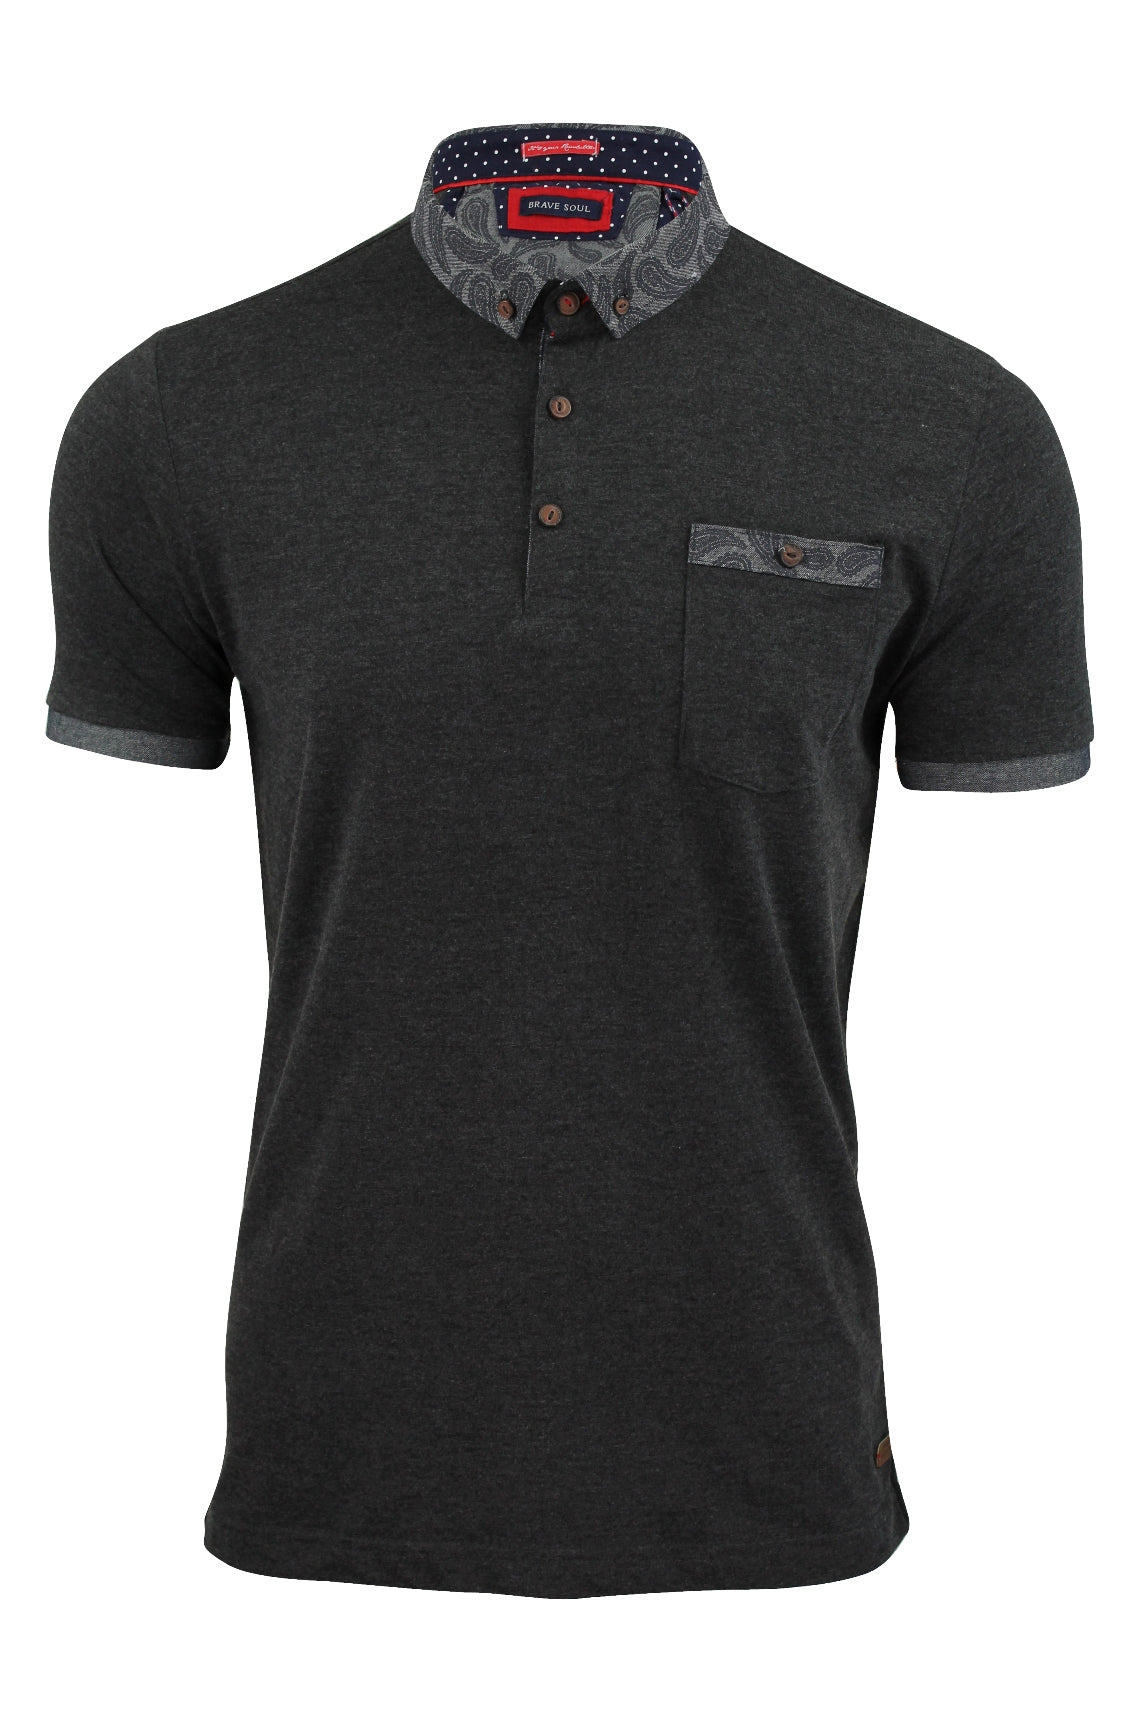 Mens Polo Shirt by Brave Soul 'Athens'-Main Image